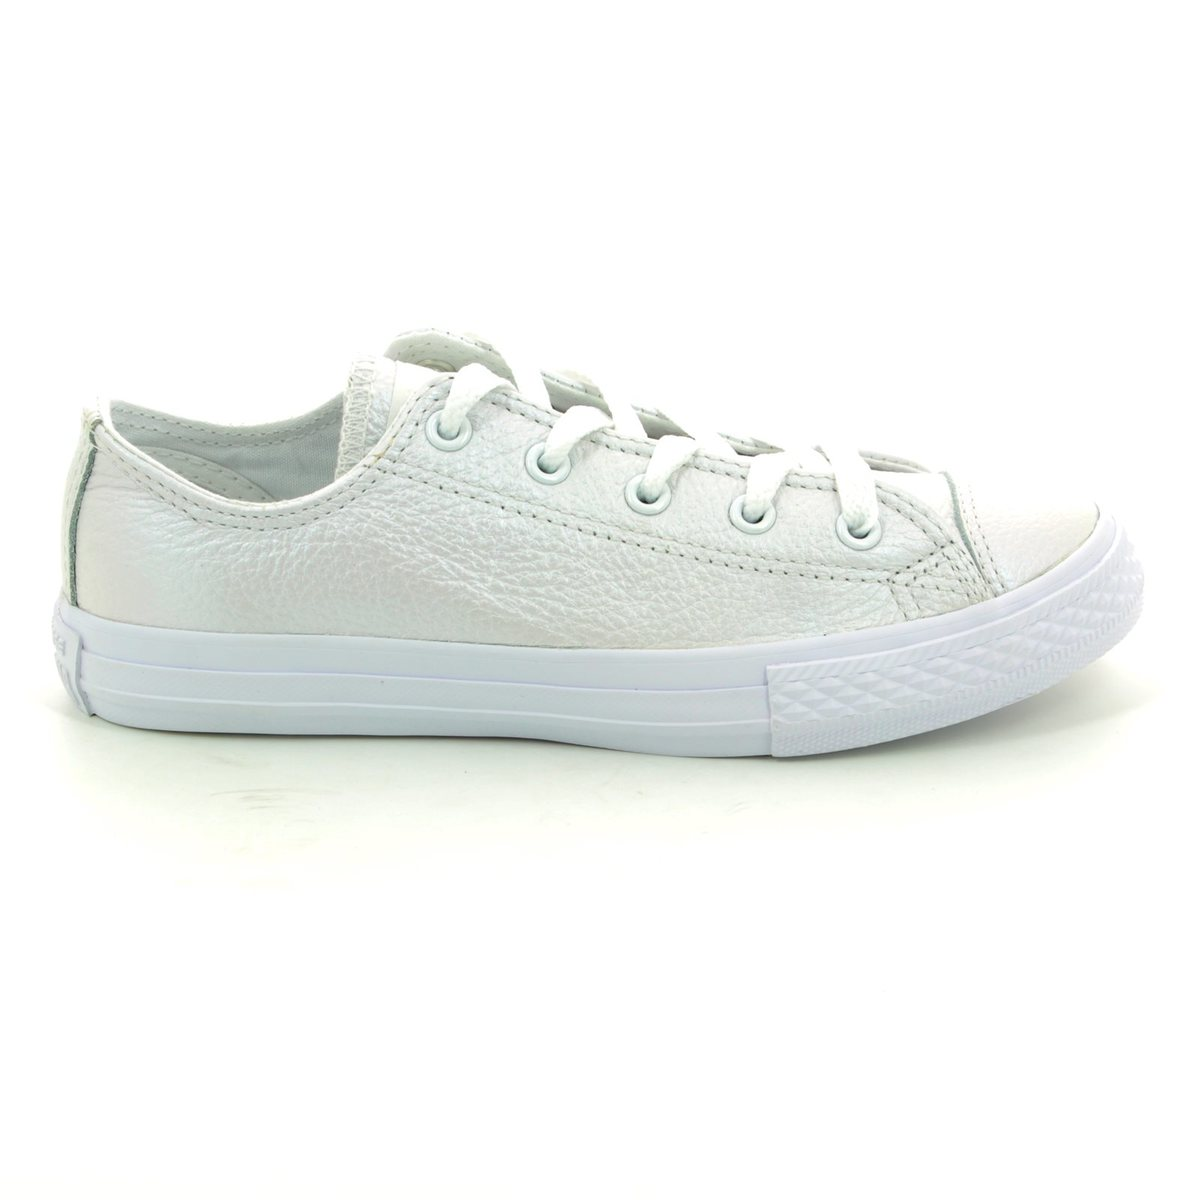 3d83b85bdde Converse Trainers - White - 358009C Chuck Taylor All Star Ox Junior Leather